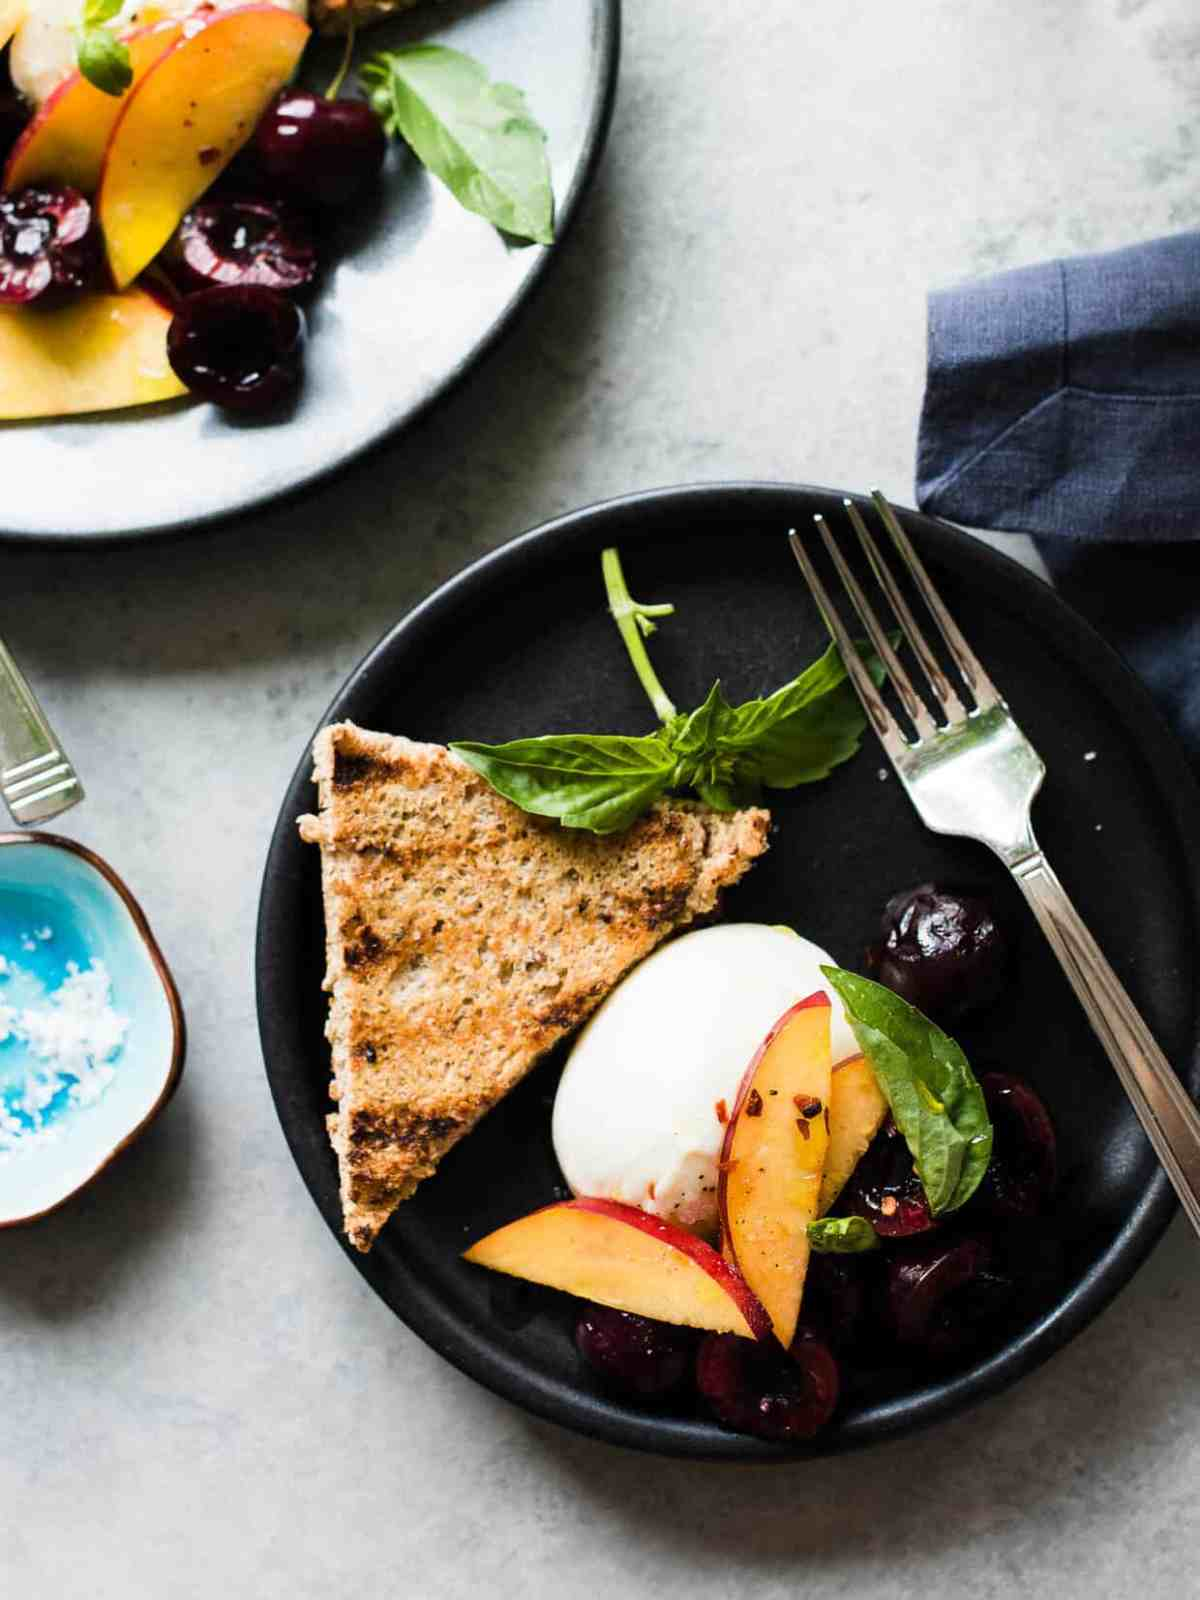 Peaches, cherries, burrata, and basil on a dark plate with grilled bread.